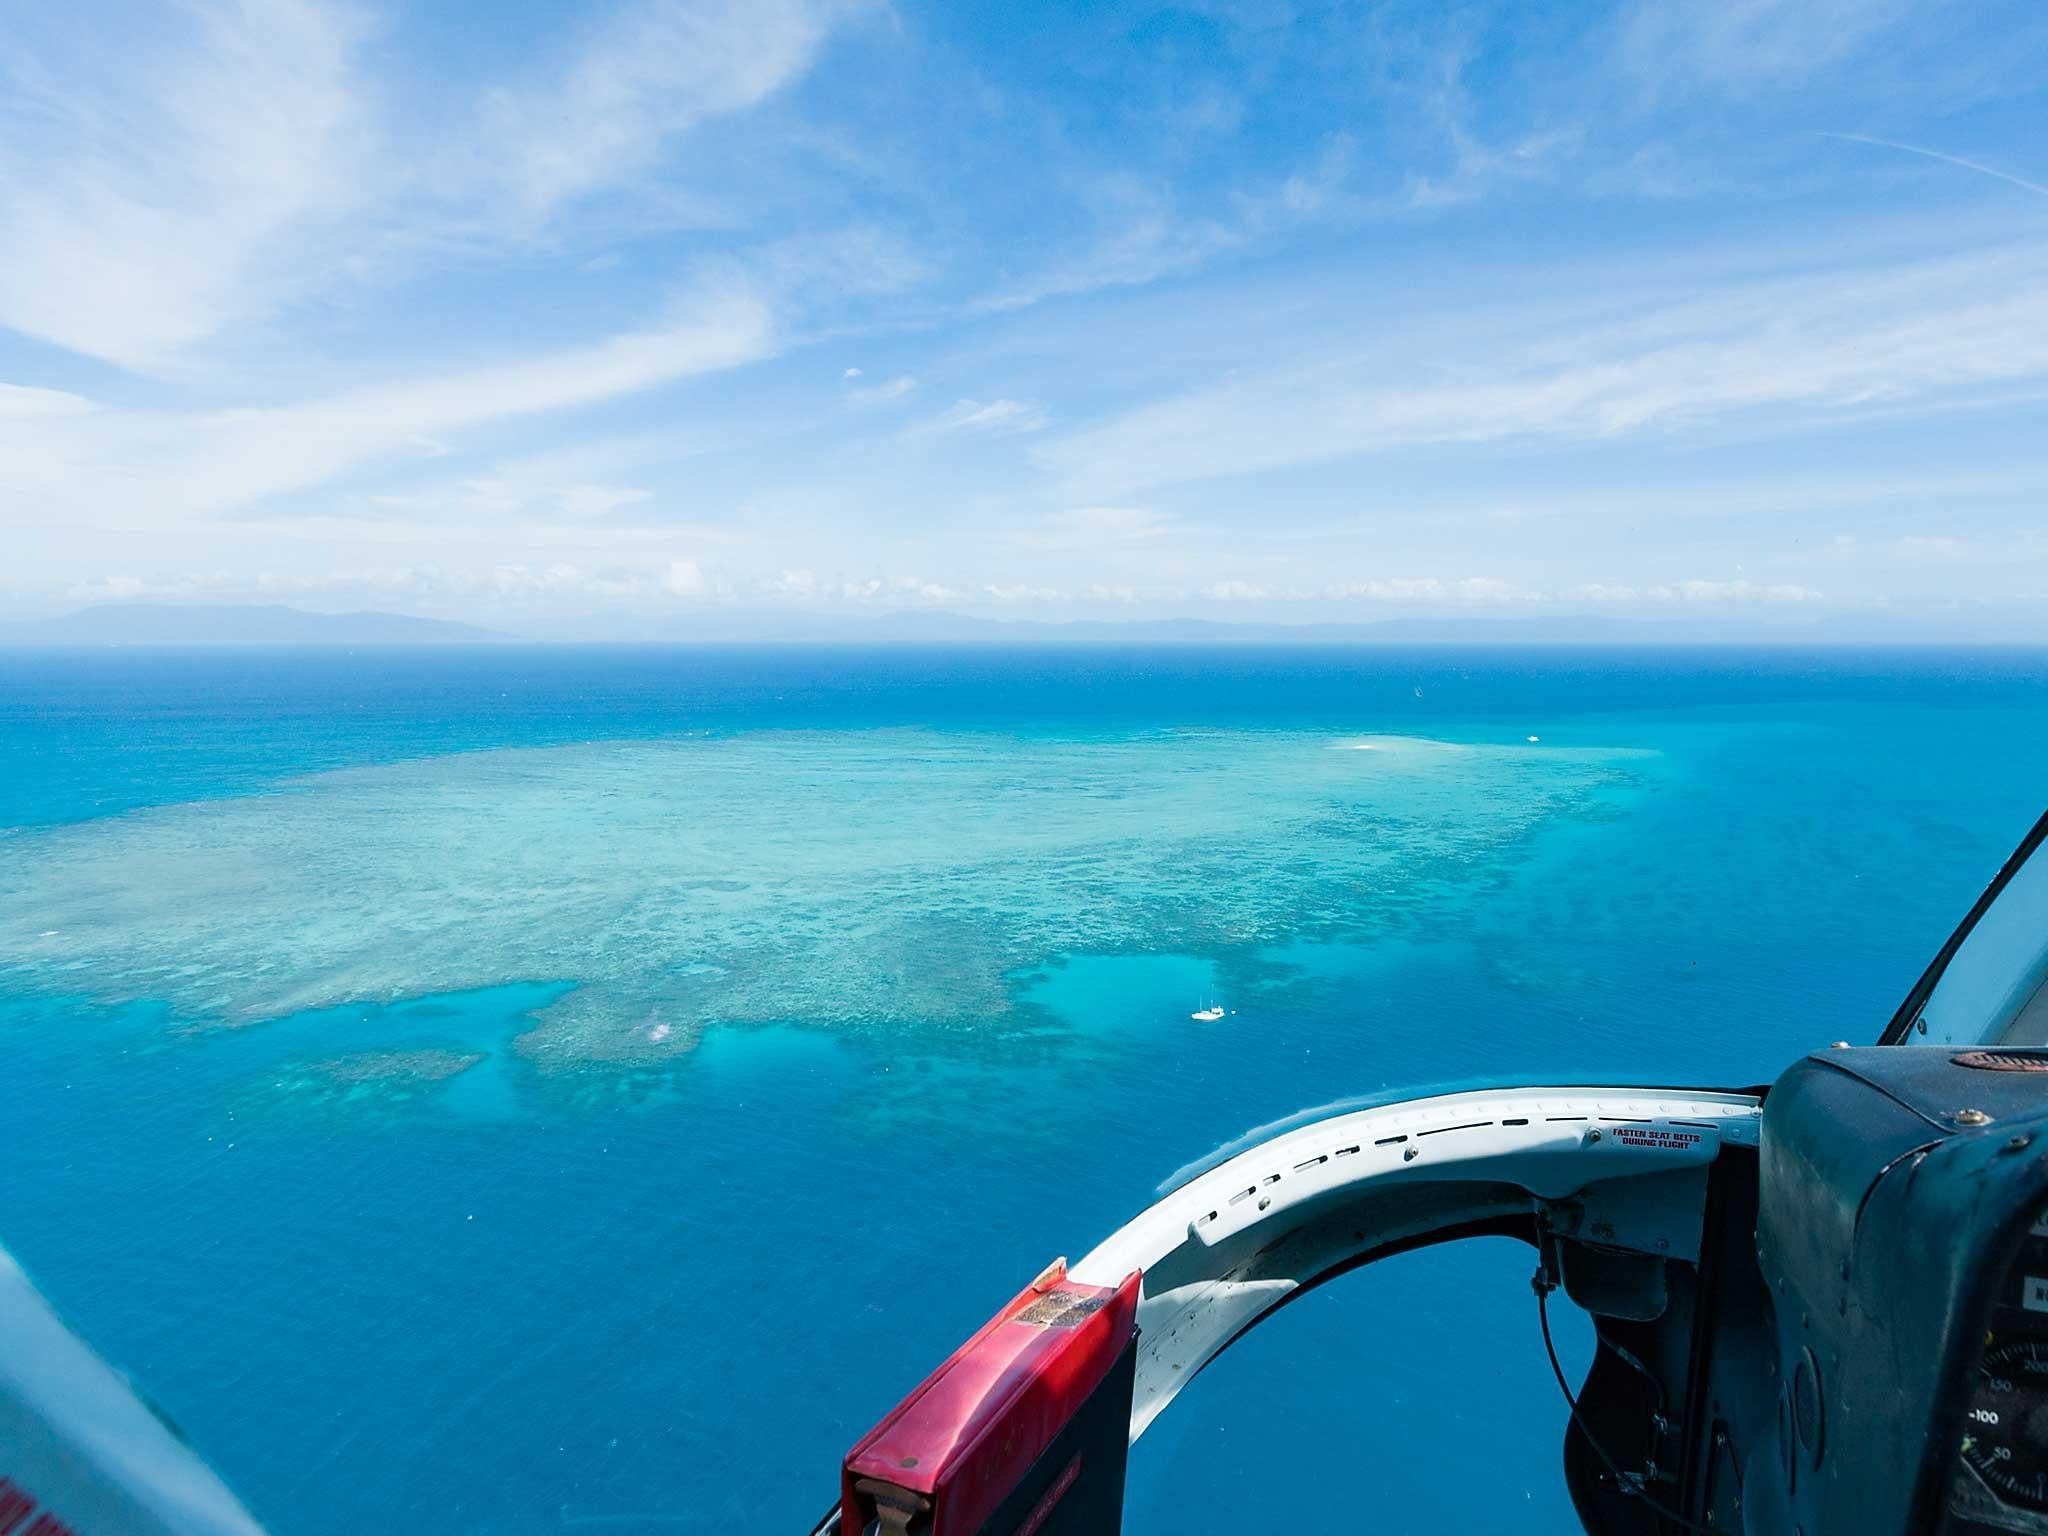 More than 90 percent of world's coral reefs will die by 2050